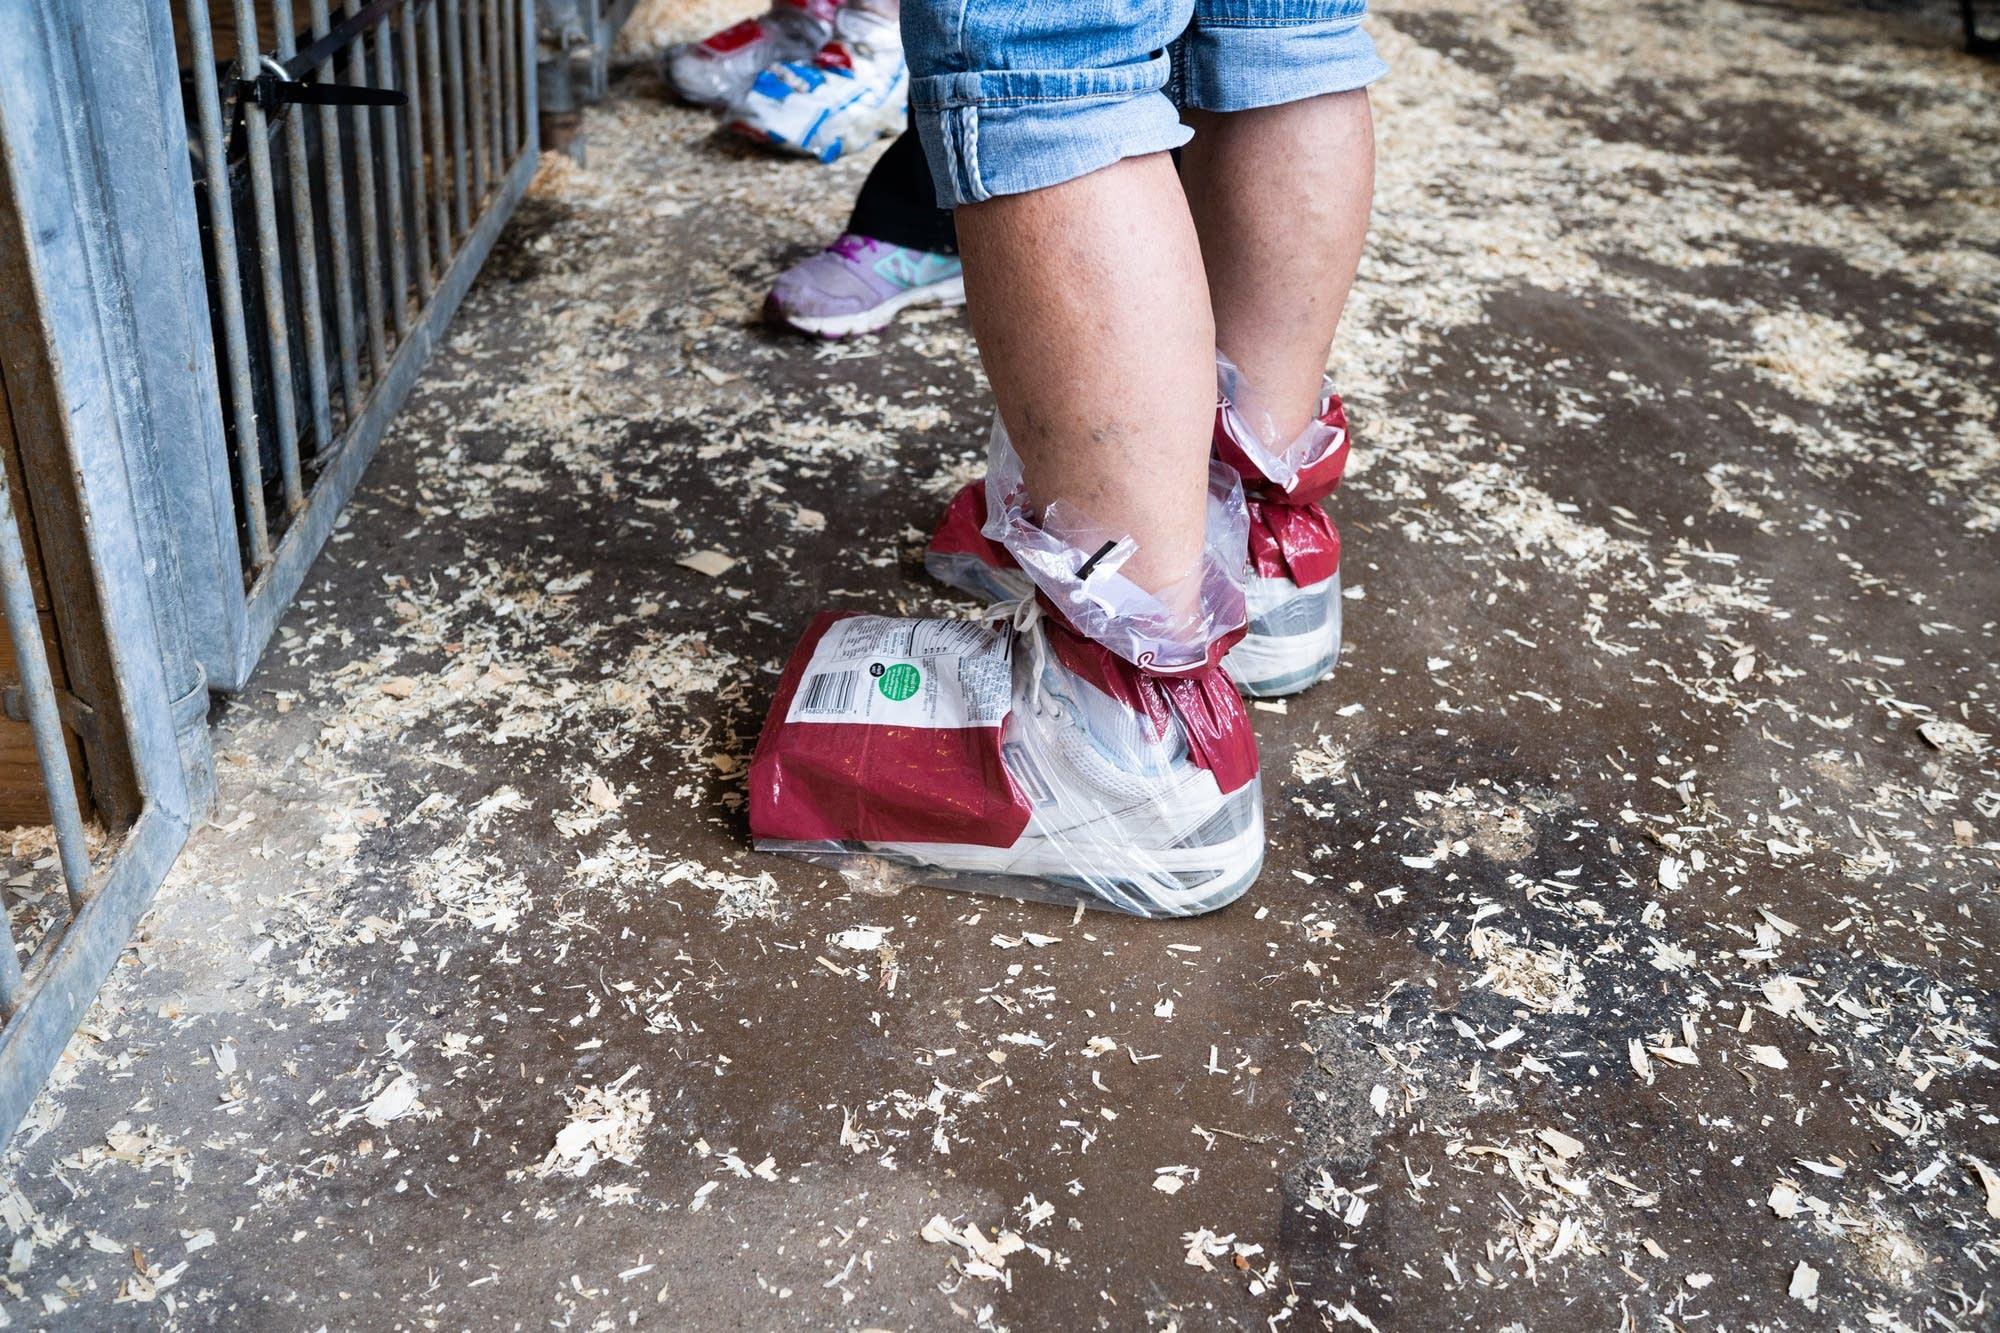 A woman wears bread bags over her shoes inside the swine barn.